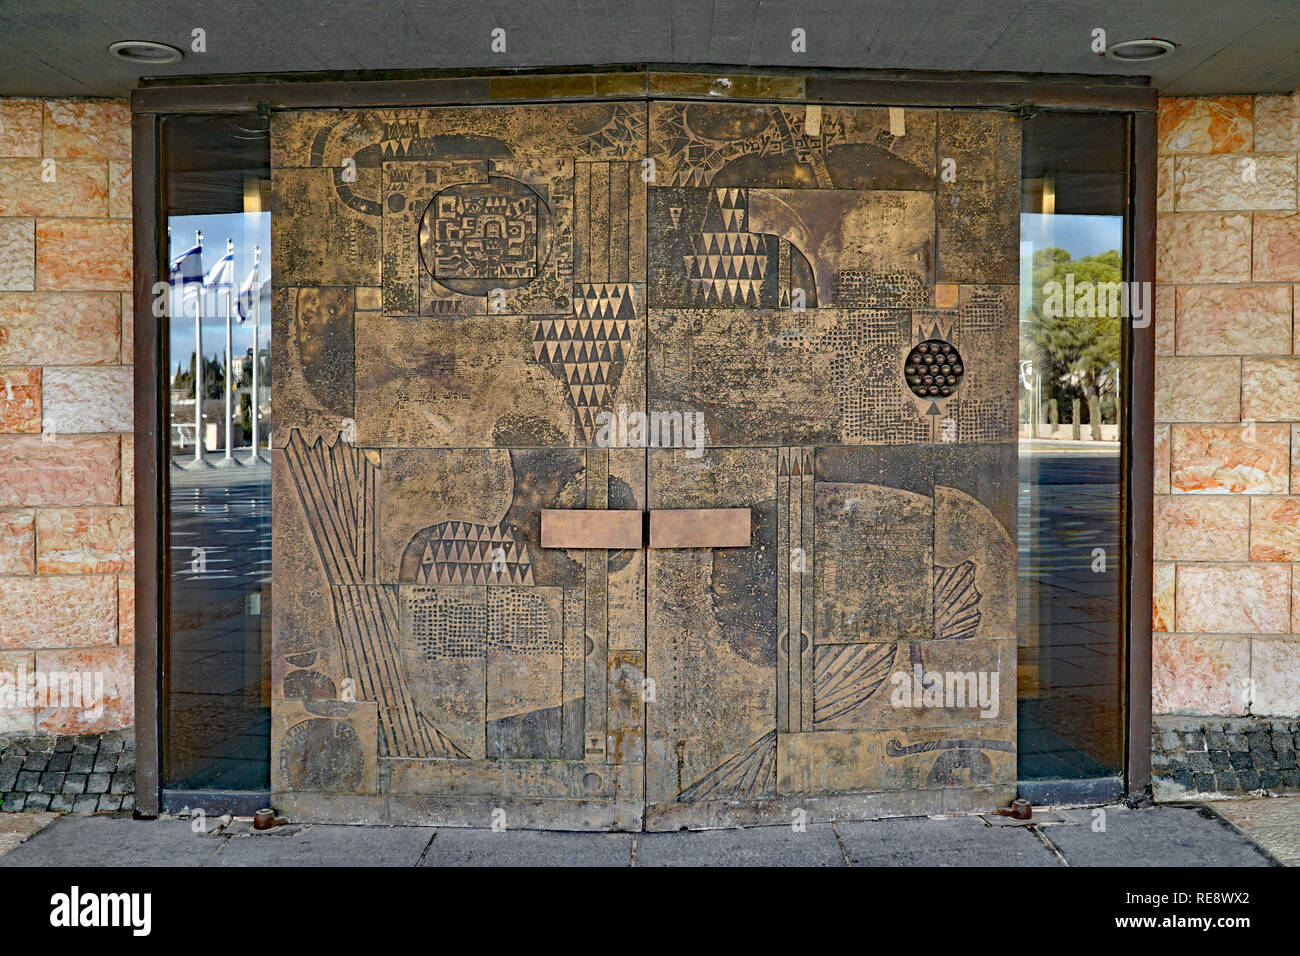 Copper covered doors of the Knesset building, Israel's parliament, with abstract designs representative of the ancient tribes - Stock Image